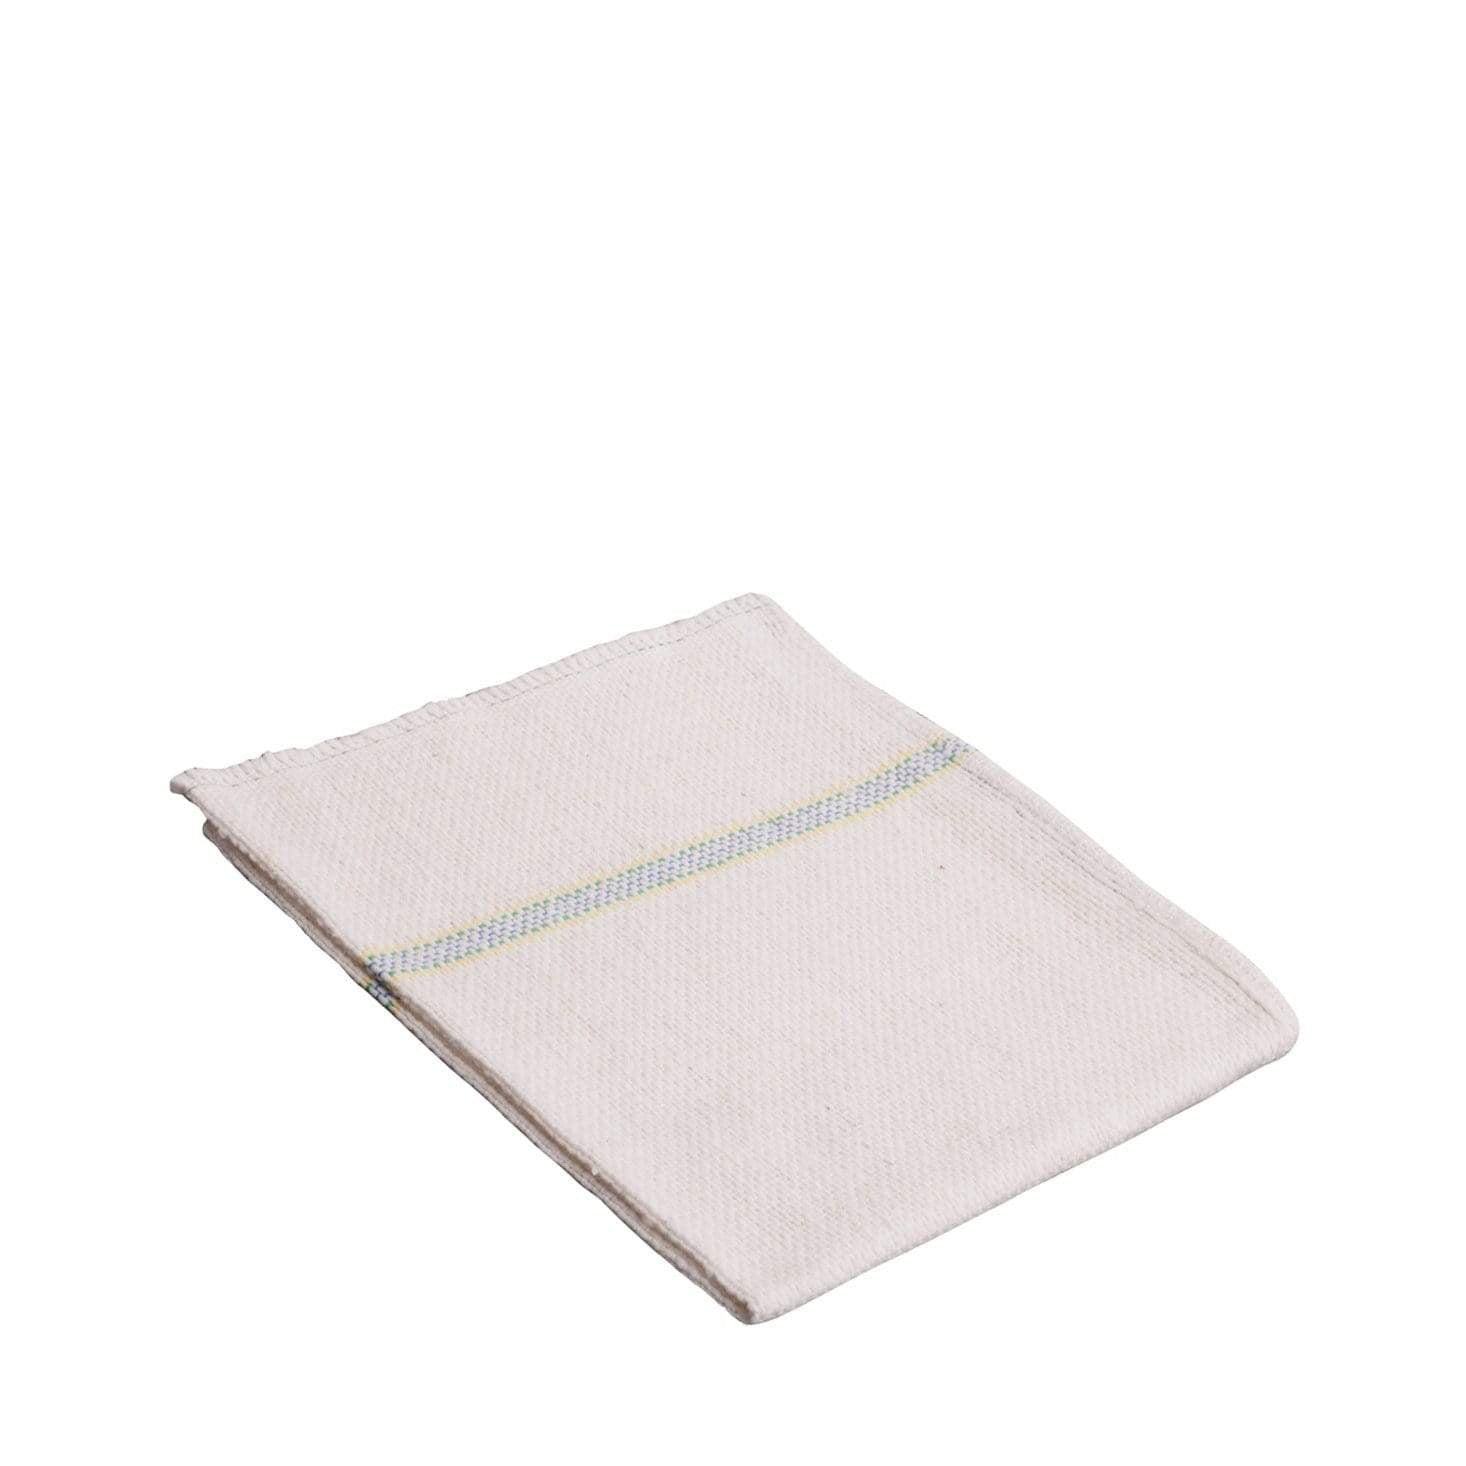 Redecker Child's Cleaning Cloth